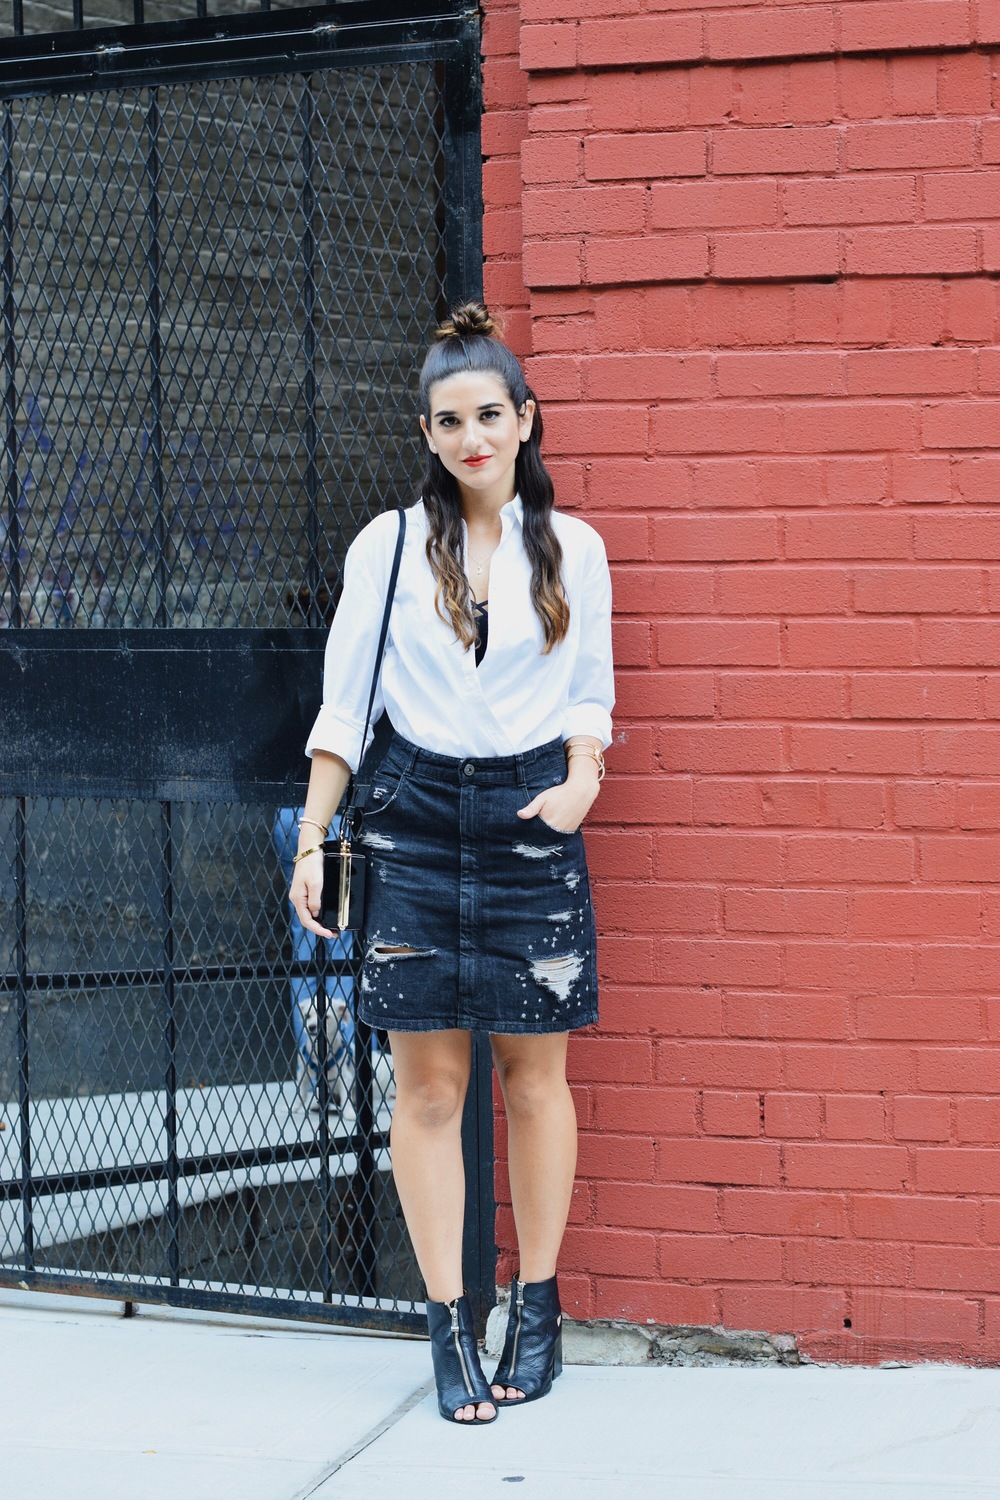 Coco & Marie Moon Necklace Giveaway Louboutins & Love Fashion Blog Esther Santer NYC Street Style Blogger Lifestyle Topknot Bun Denim Ripped Jean Skirt White Button Down Zara Black Box Clutch Bag Nordstrom Booties Bralette Women Girl Hair Gold Jewelry.JPG